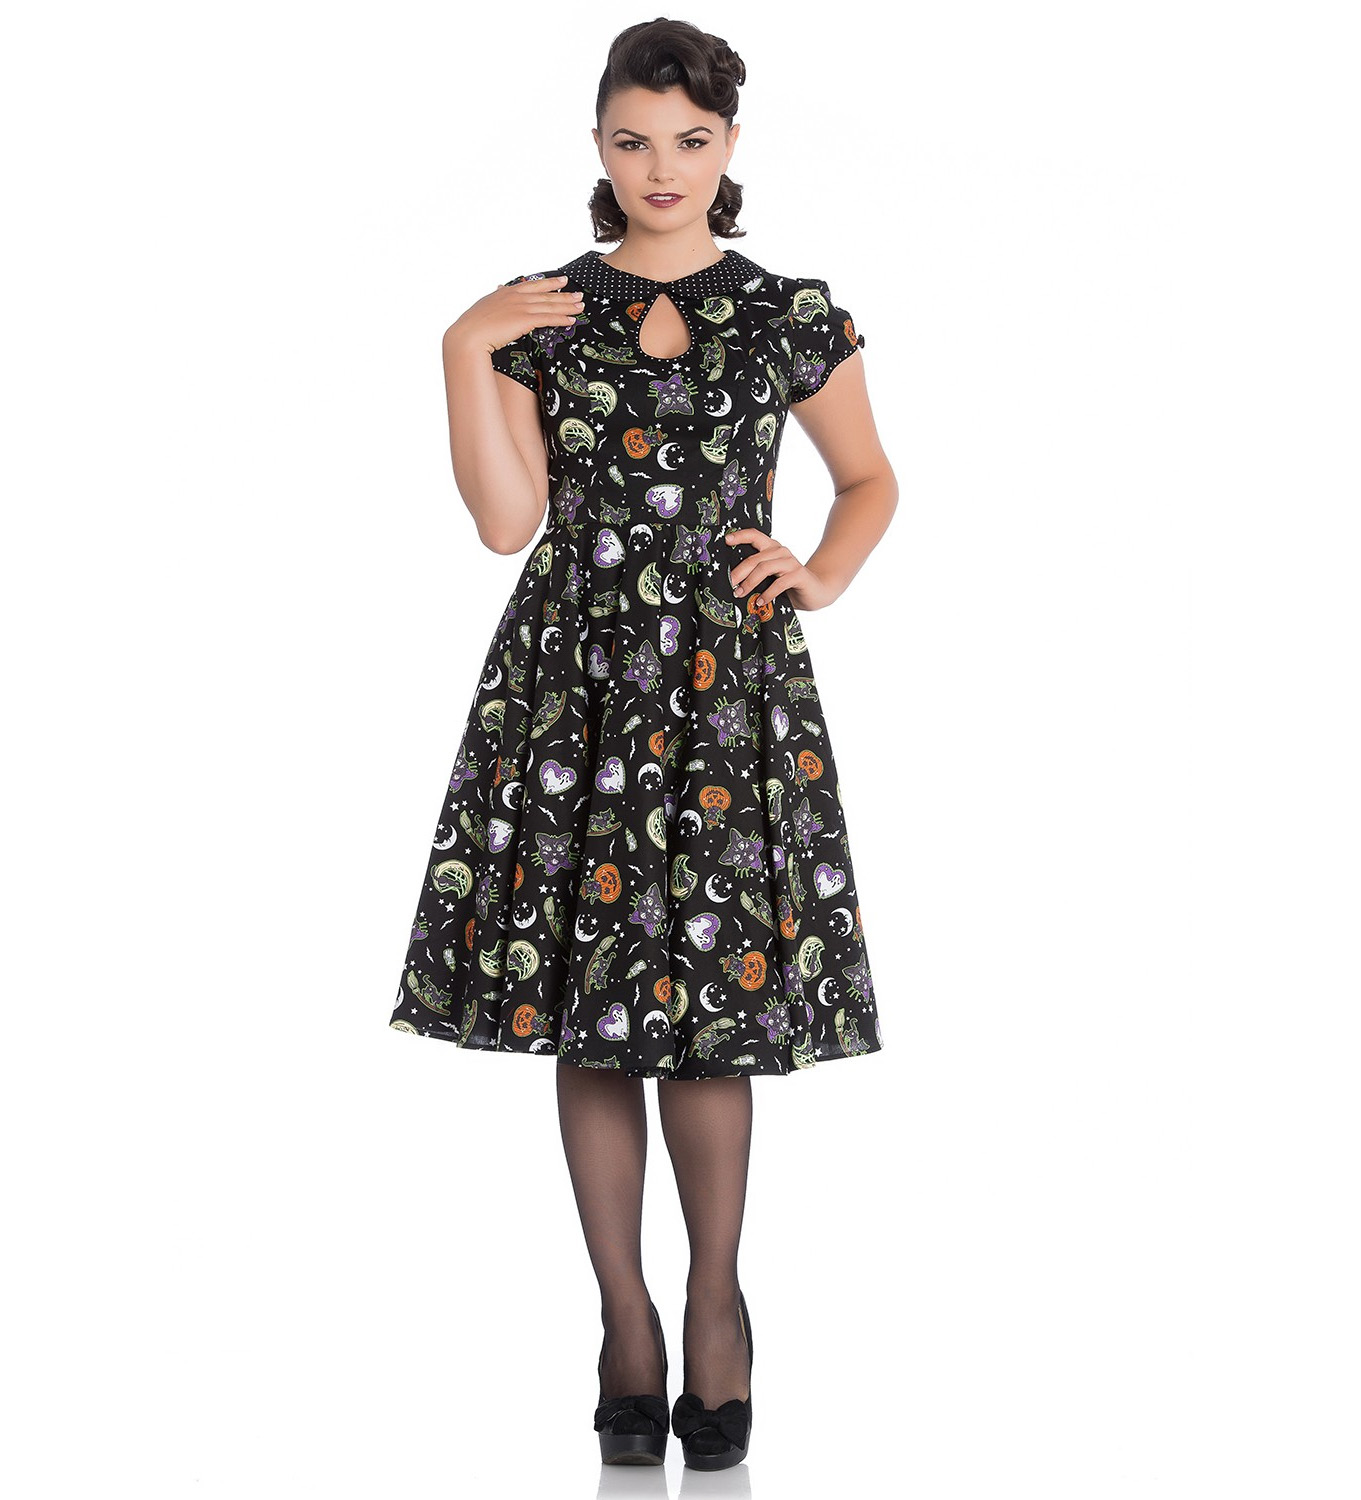 Hell-Bunny-50s-Black-Pin-Up-Dress-Horror-Witchy-SALEM-Halloween-All-Sizes thumbnail 21